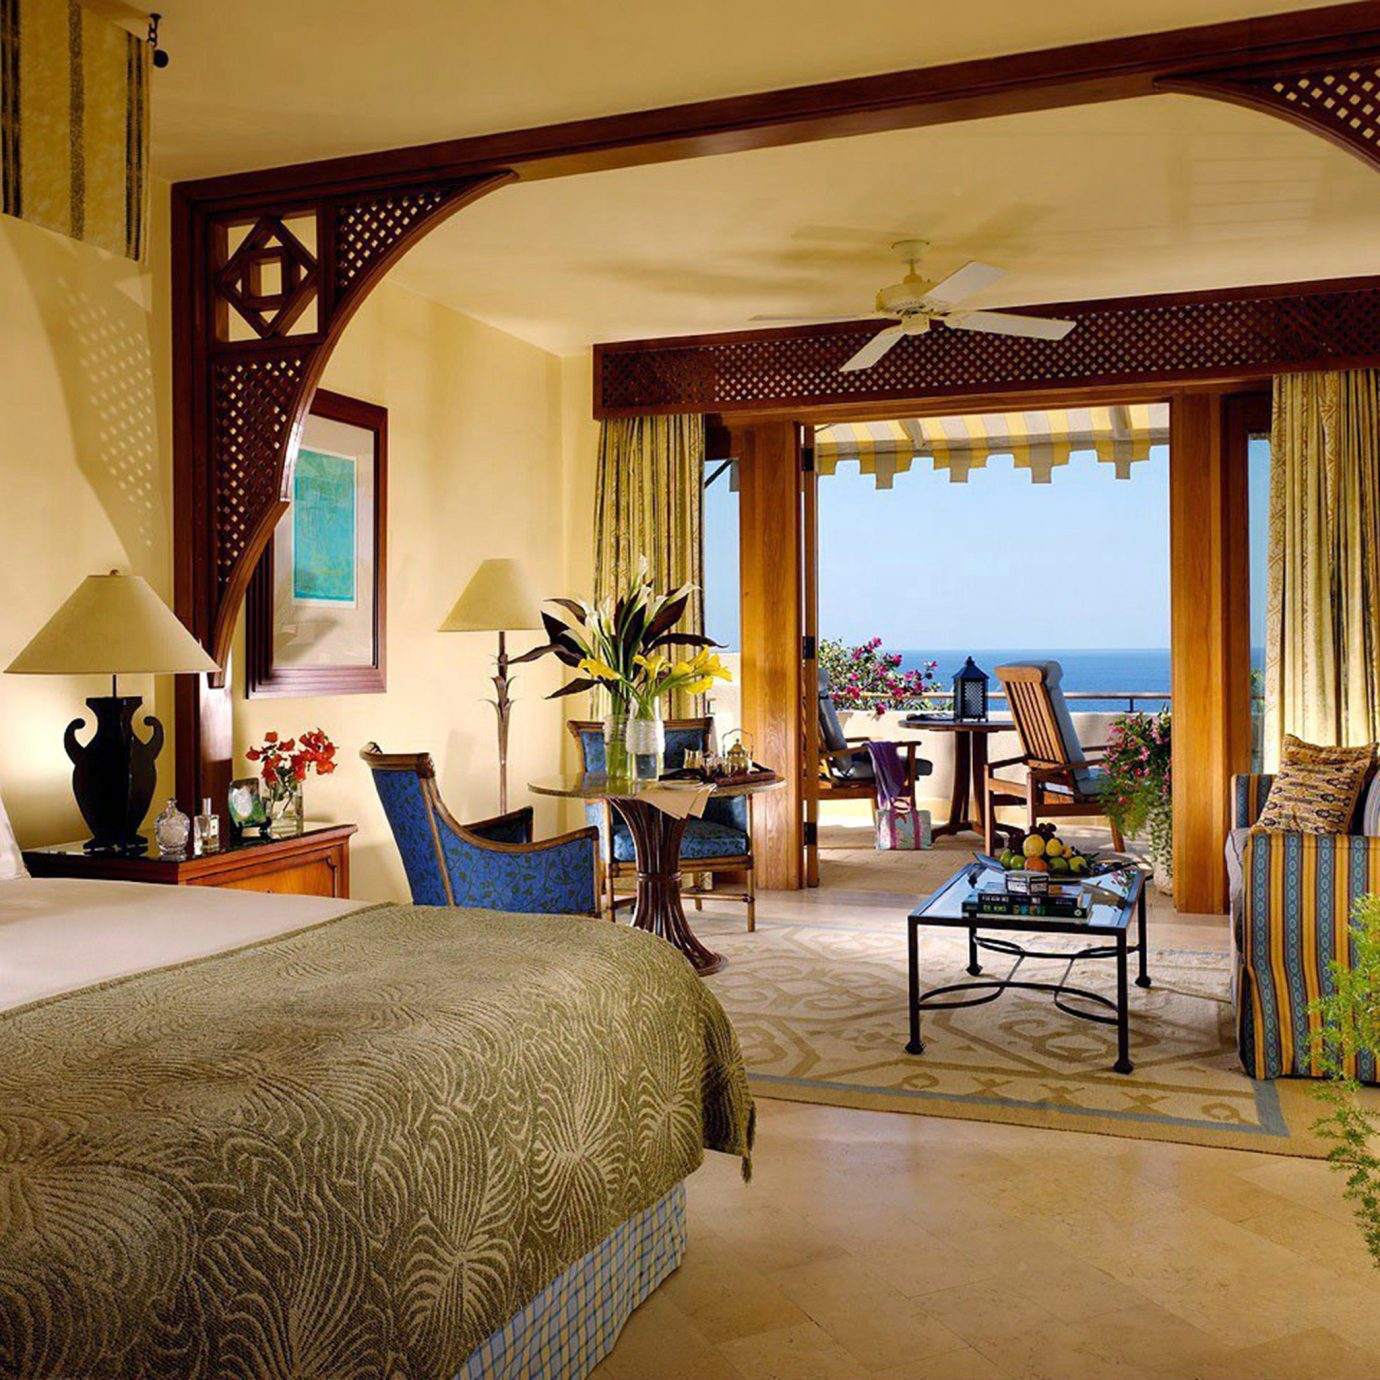 Bedroom Classic Elegant Scenic views Suite property house Villa home Resort living room mansion cottage farmhouse hacienda